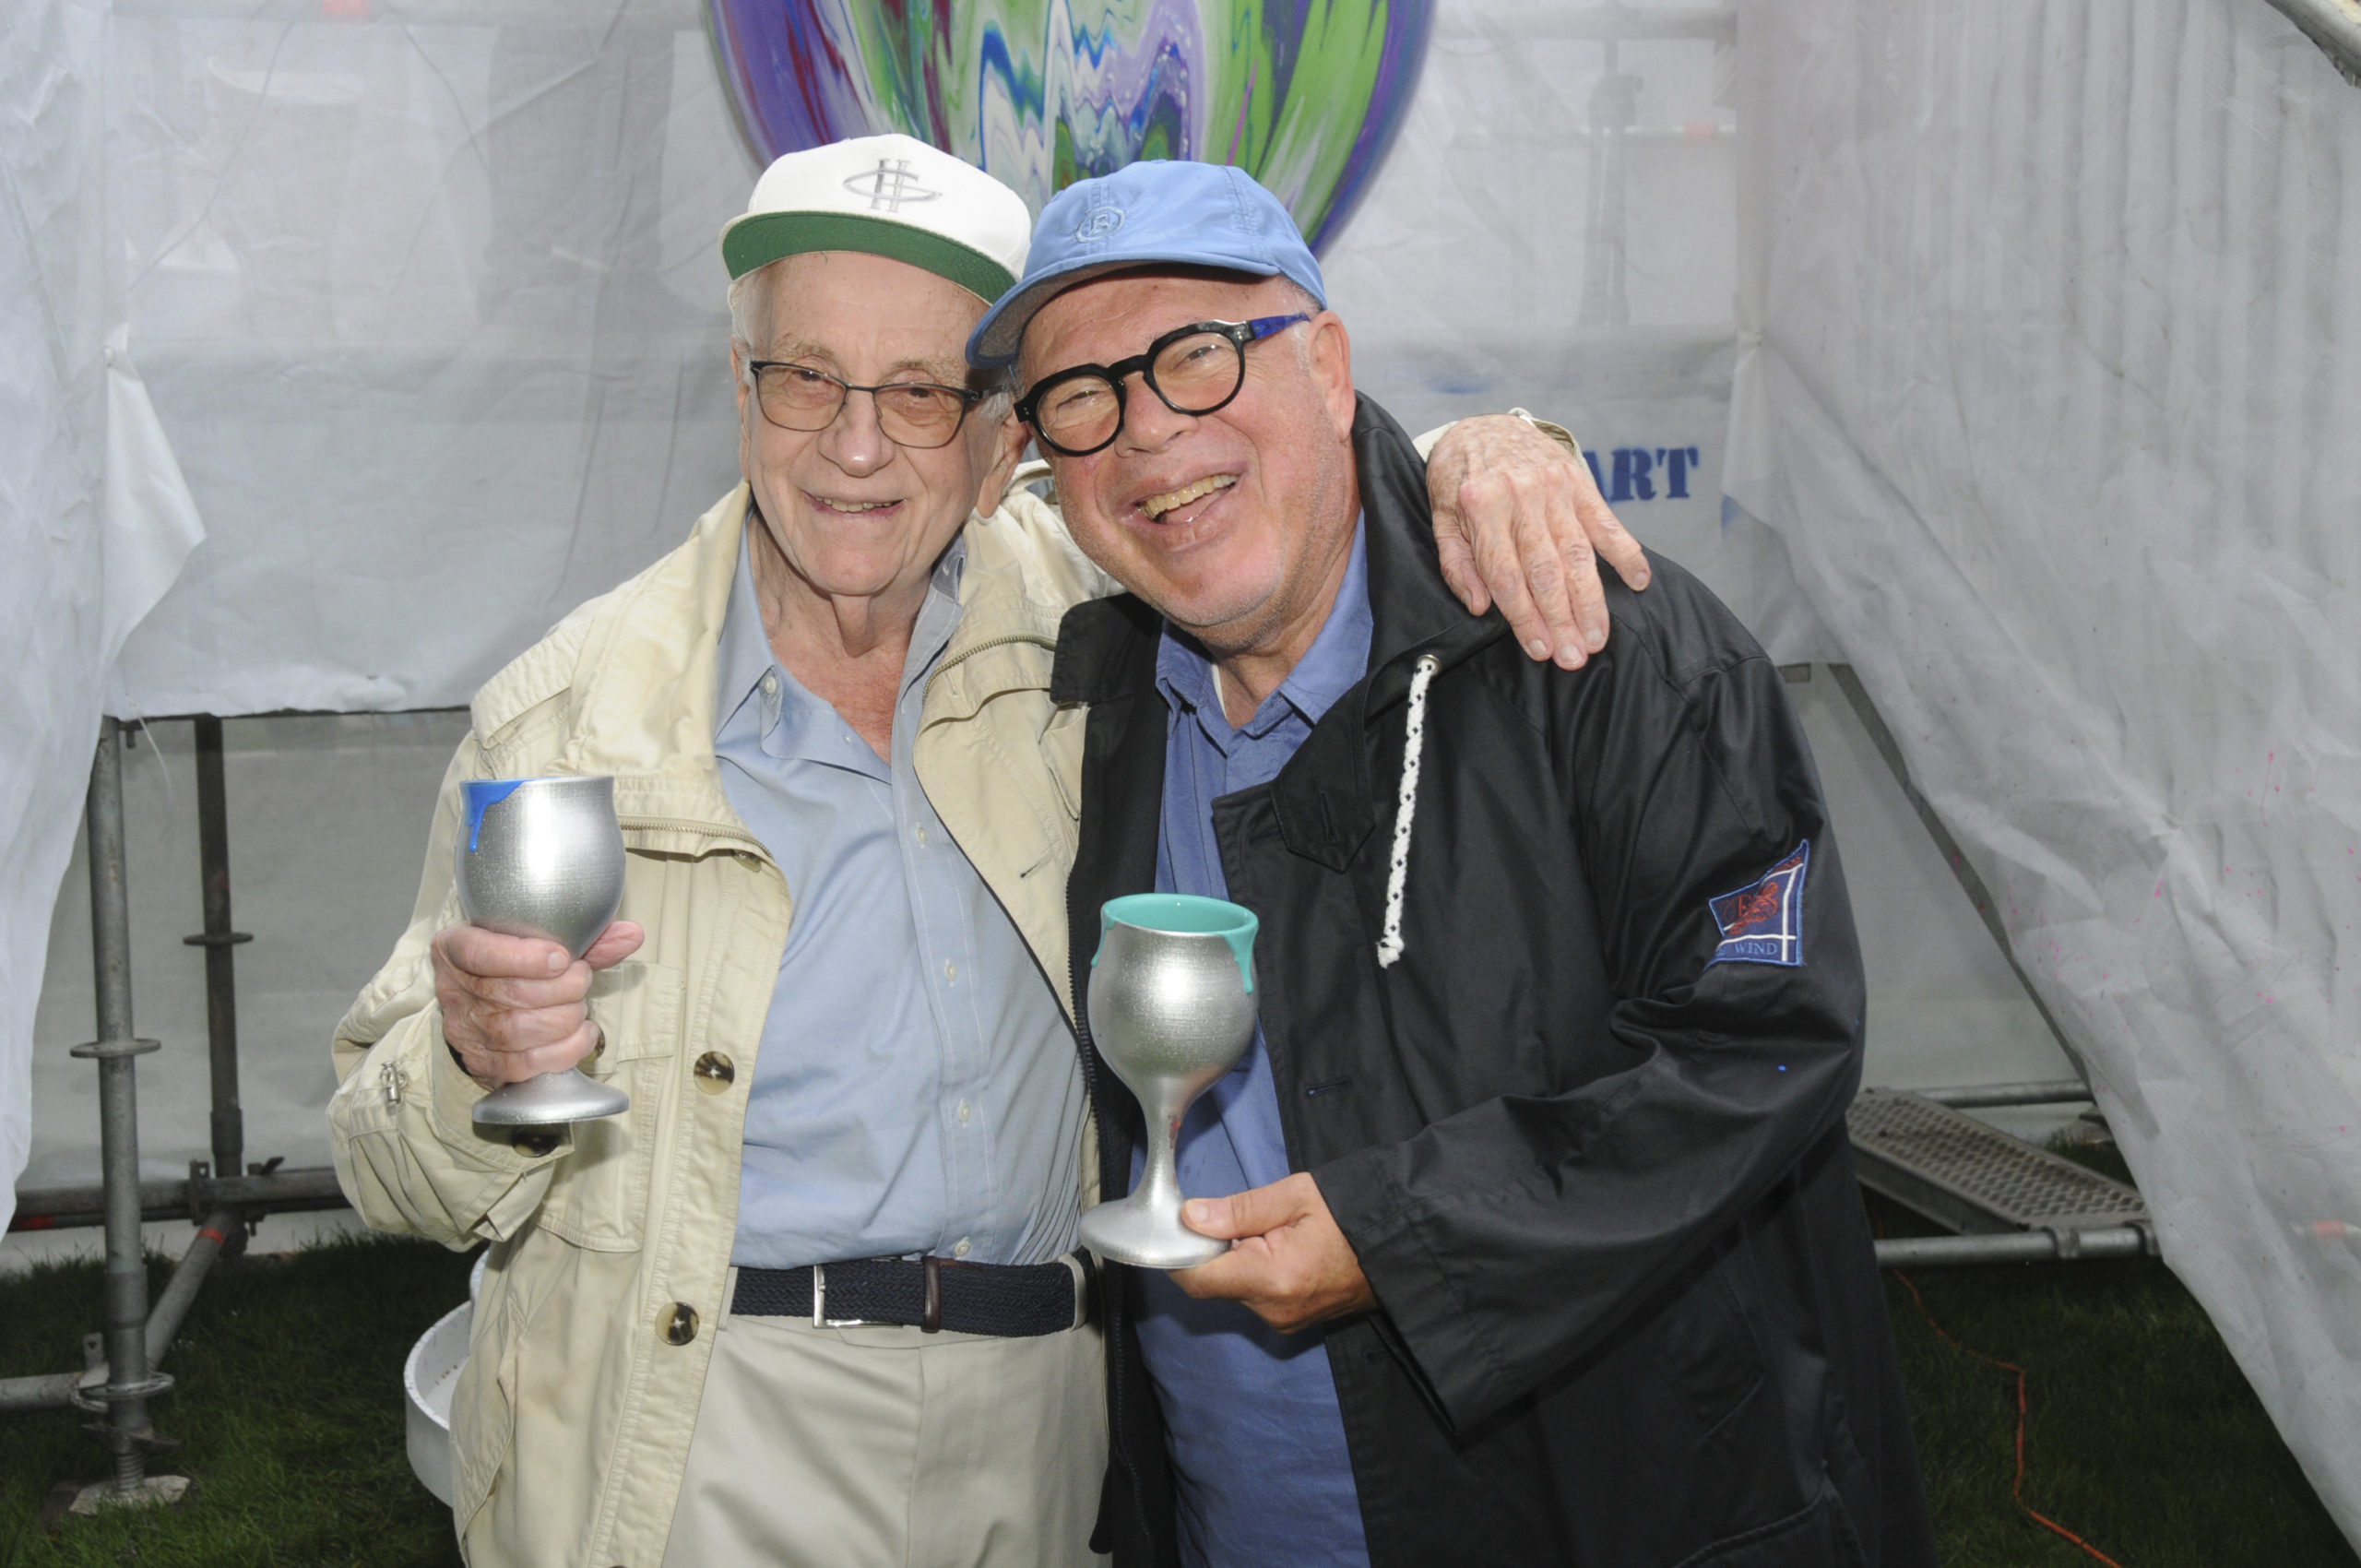 """Bernard Goldberg and Norman Stark, two of the founders of the Chabad of the Hamptons, at the 11th Annual Benefit, called """"Overflowing Blessings"""" on August 8. Guests had a chance to brush up on their art skills, as they took turns pouring cups of paint over the eight foot tall Kiddush Cup by Yitzchock Moully, the Pop Art Rabbi.     RICHARD LEWIN"""